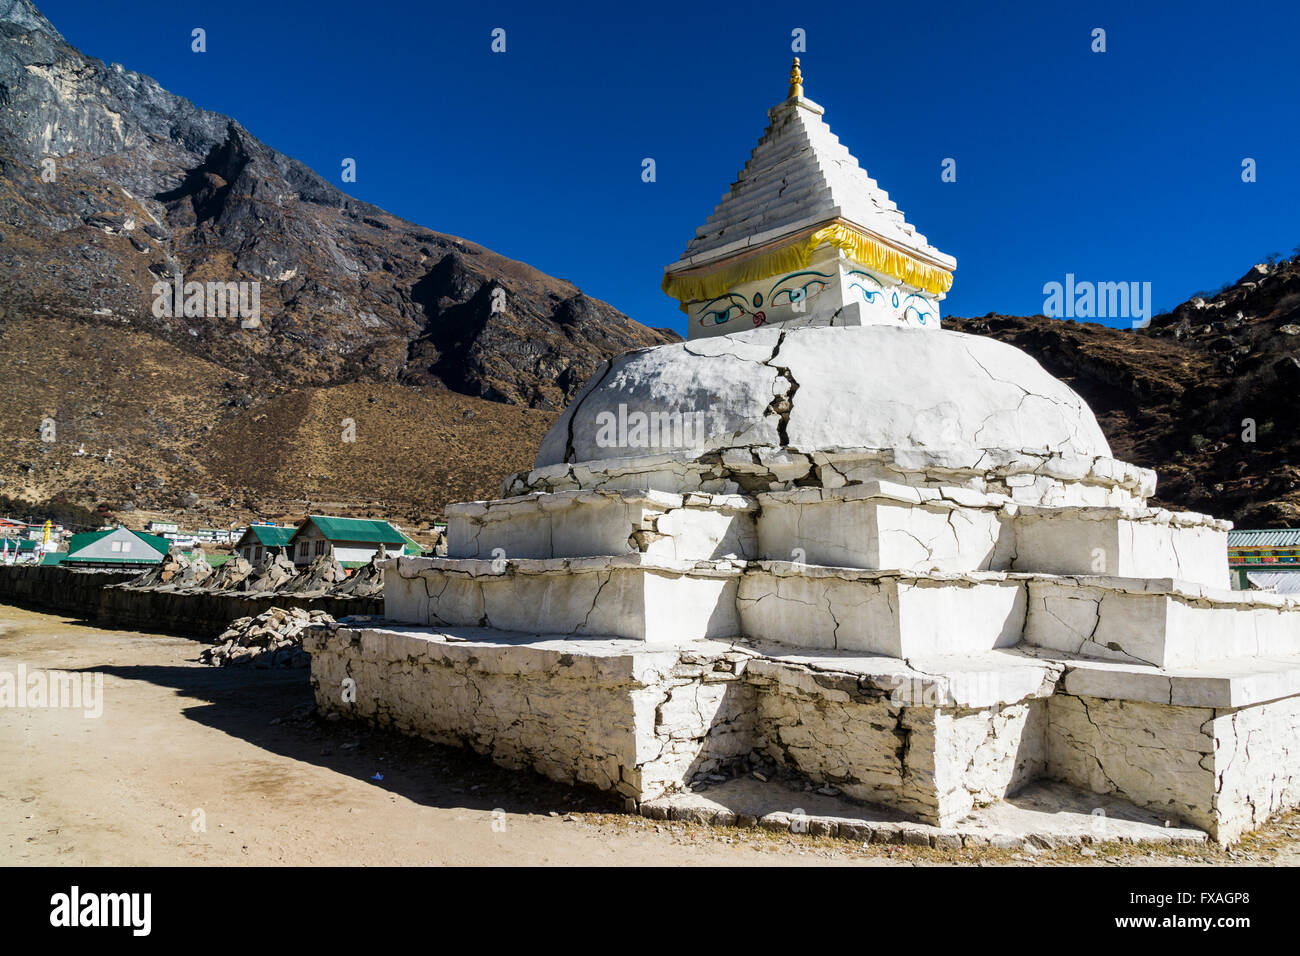 Stupa of the village of Khumjung, damaged by the earthquake in 2015, Khumjung, Solo Khumbu, Nepal - Stock Image